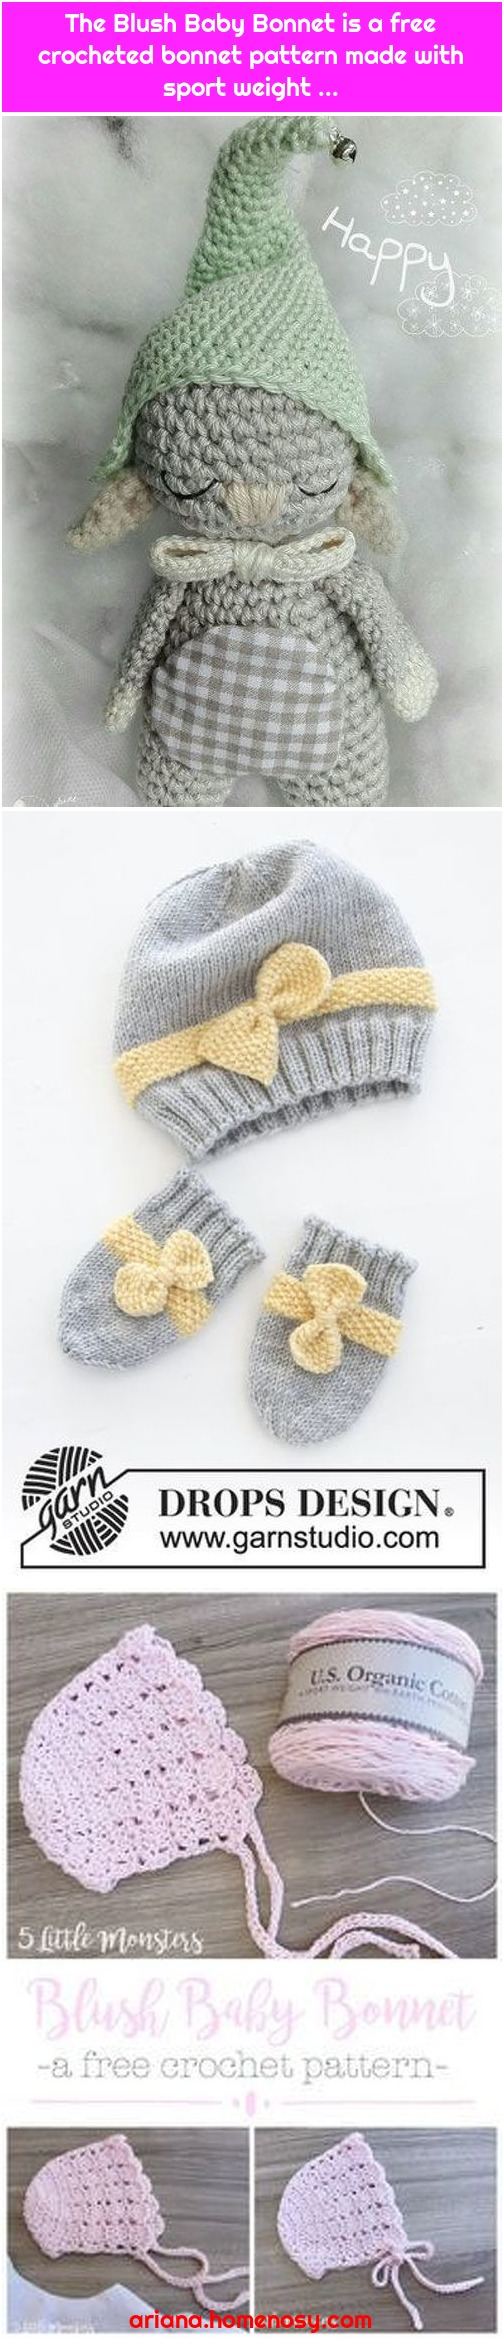 The Blush Baby Bonnet is a free crocheted bonnet pattern made with sport weight ...